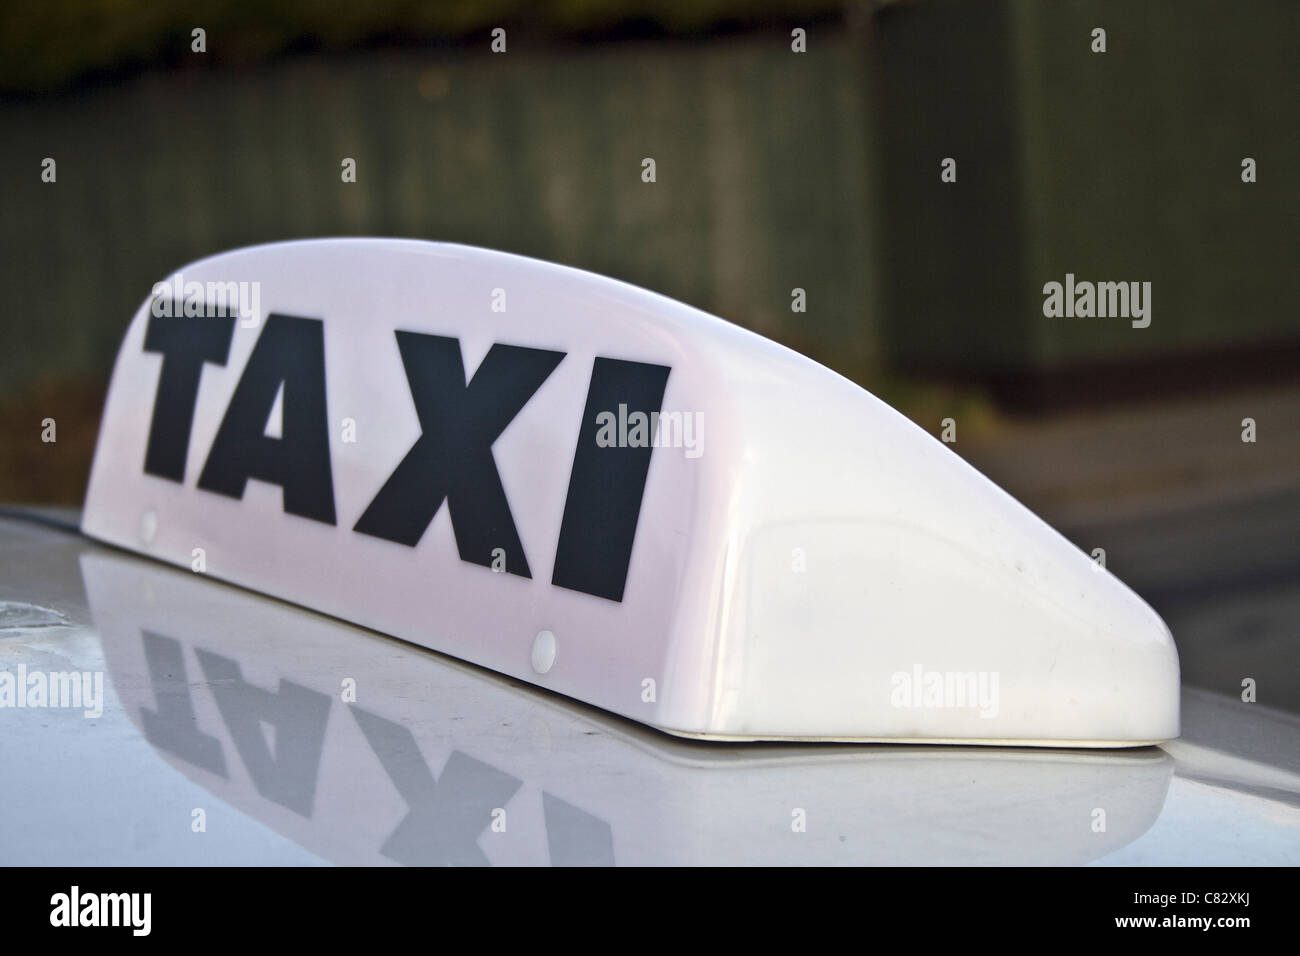 Close up of white taxi for hire sign and light from a hackney cab waiting for a fare on a taxi rank - Stock Image